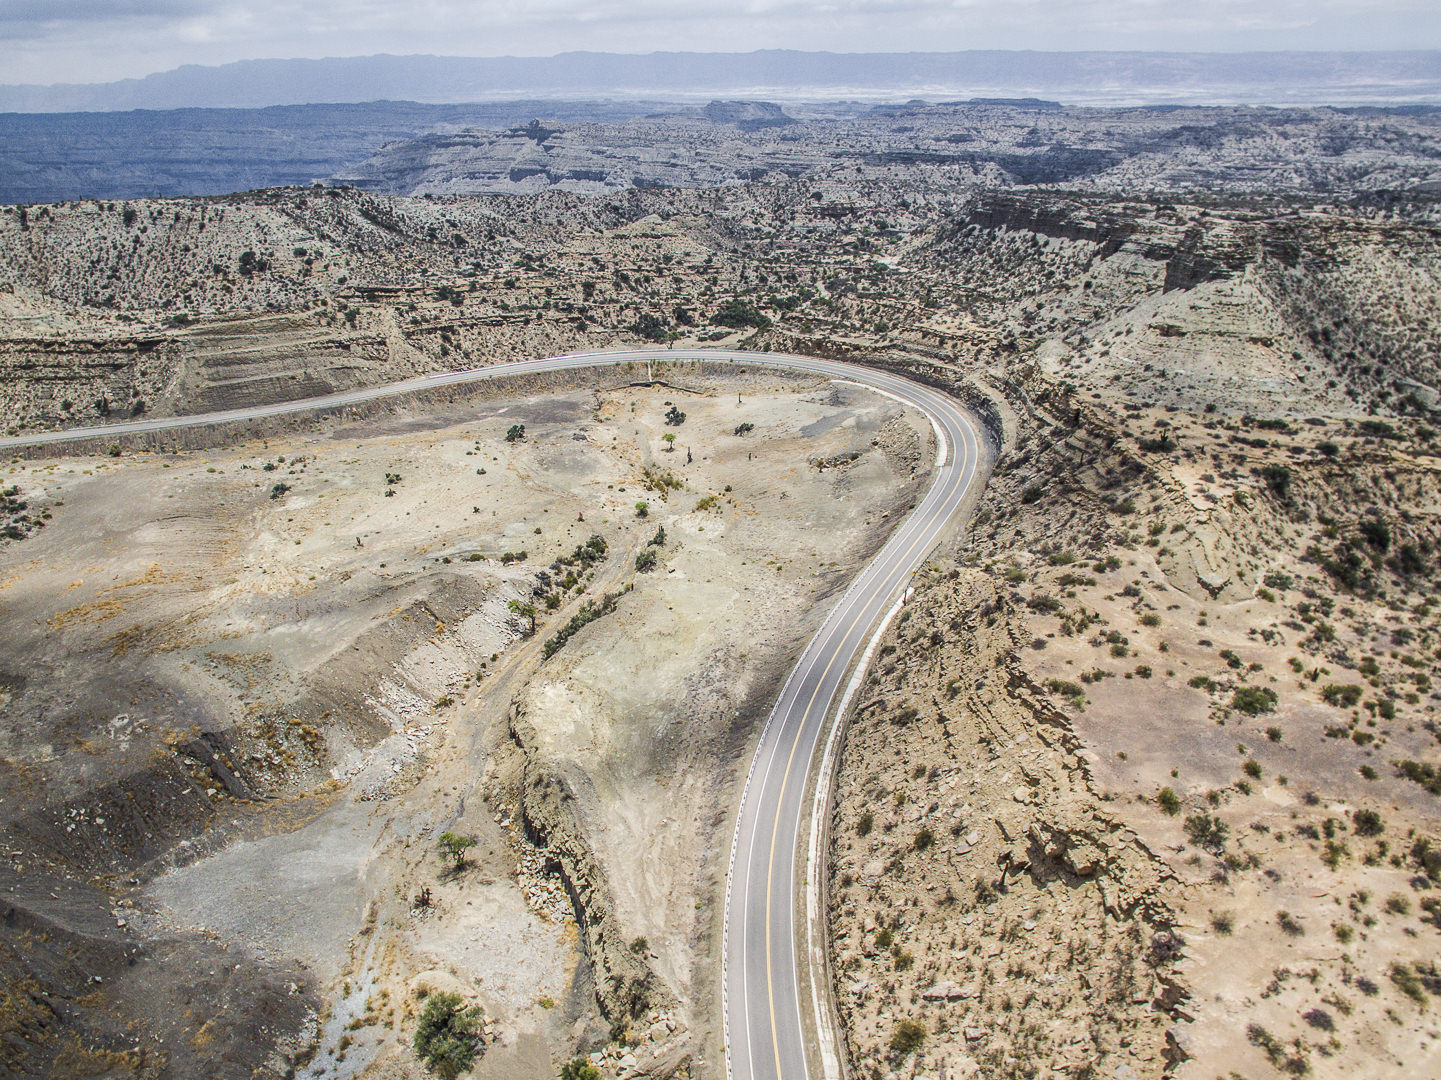 Aerial photography of road surrounded by arid land and mountains